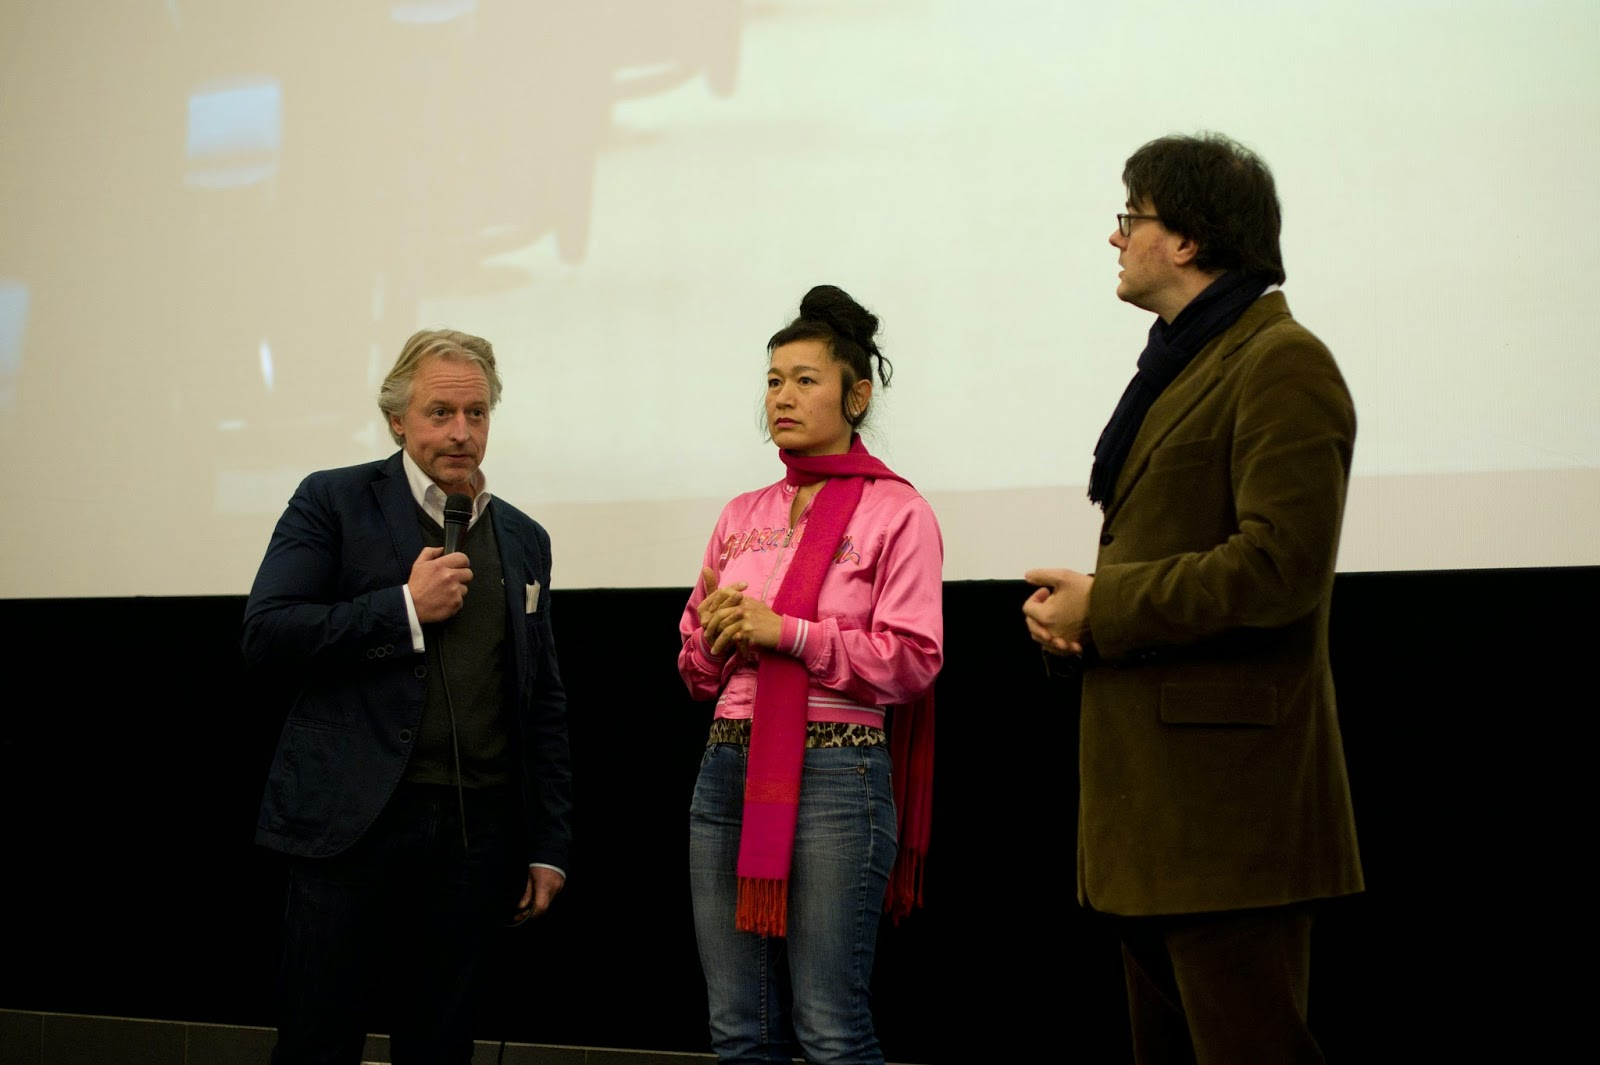 on stage: Olaf Stüber, Hito Steyerl, Ivo Wessel